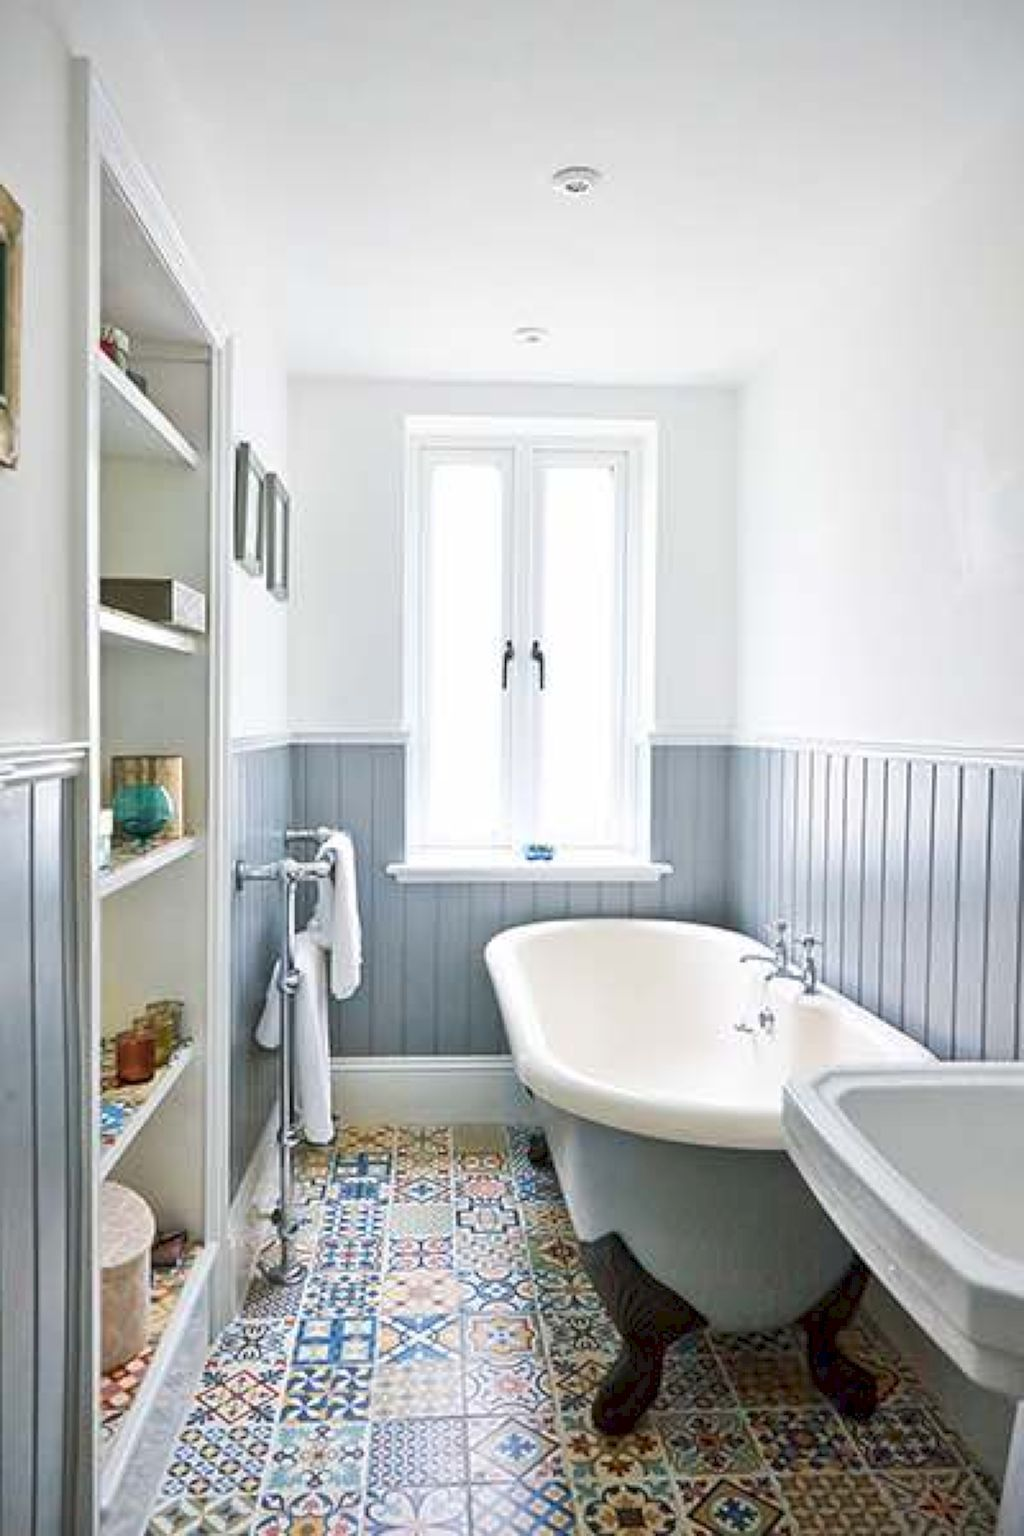 58 Cottage Bathroom Design Ideas | Bathroom designs, Decorating ...